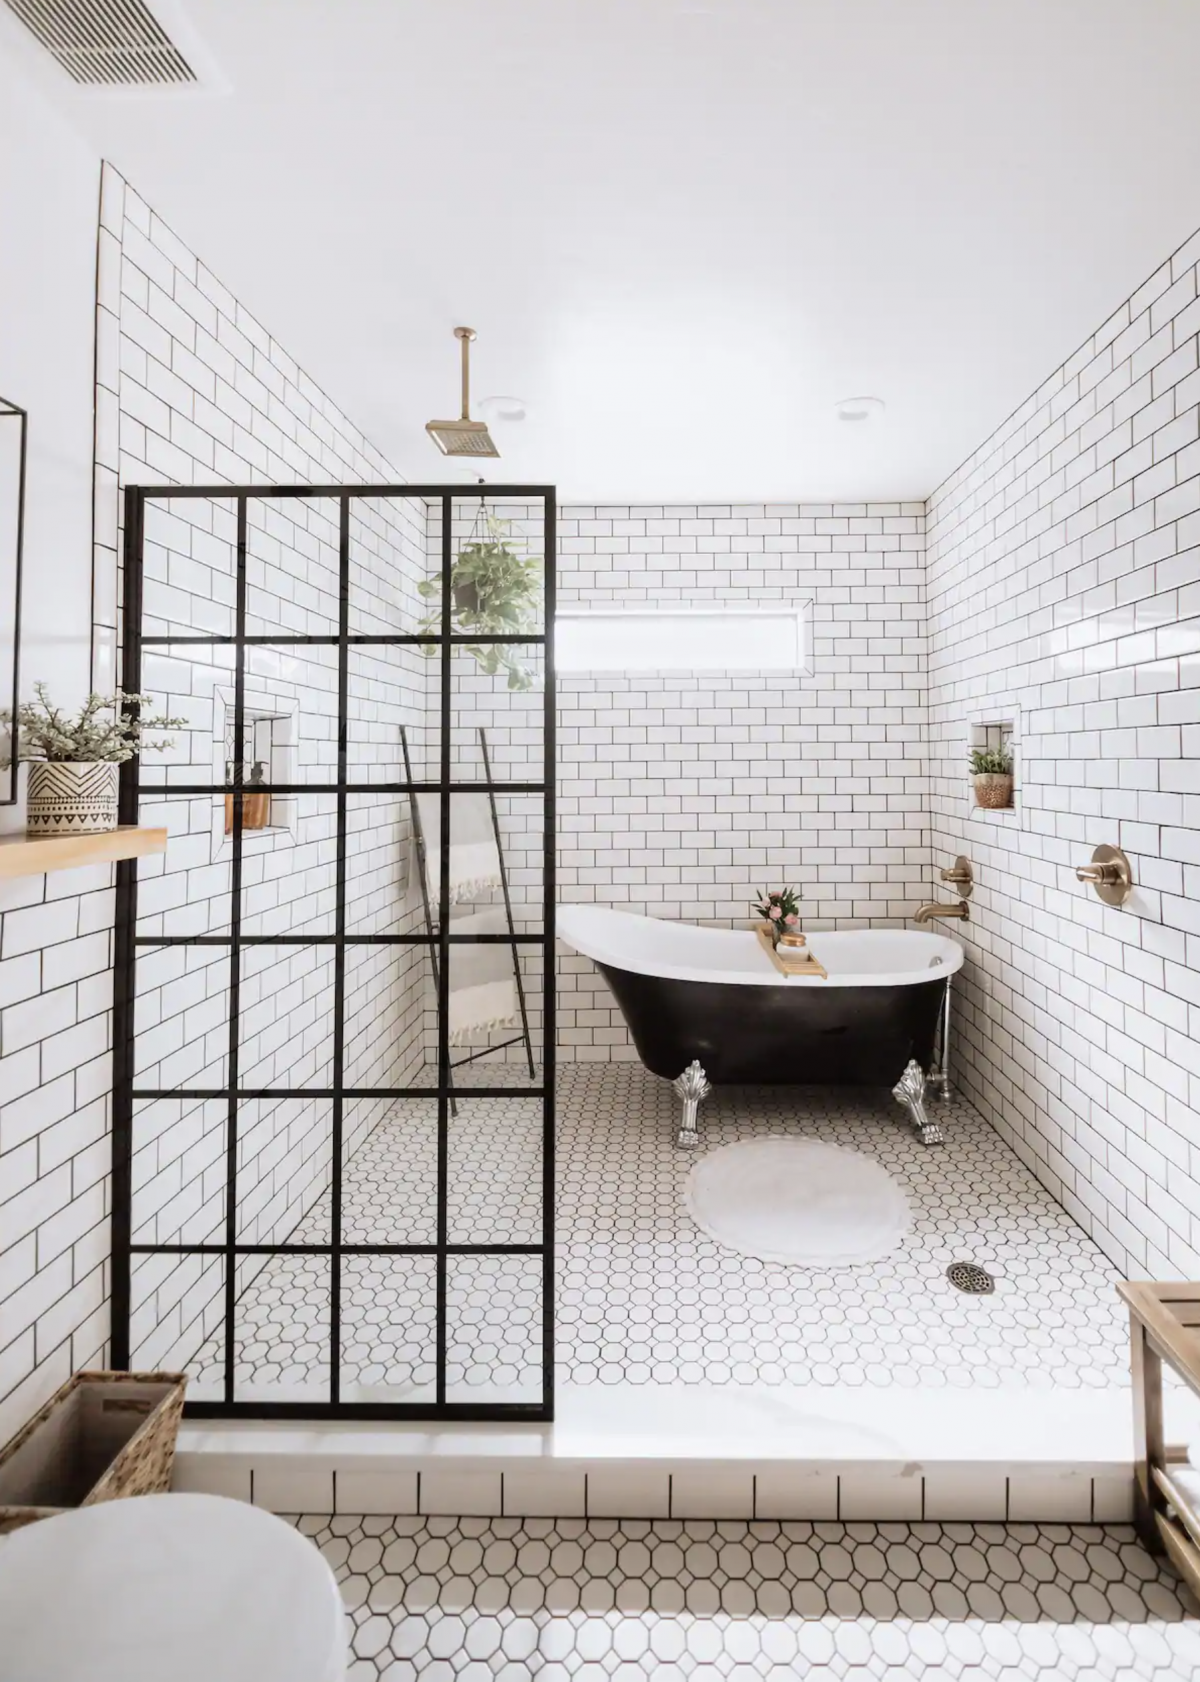 Black clawfoot tub in a shower wet room with subway tile and a glass grid panel.